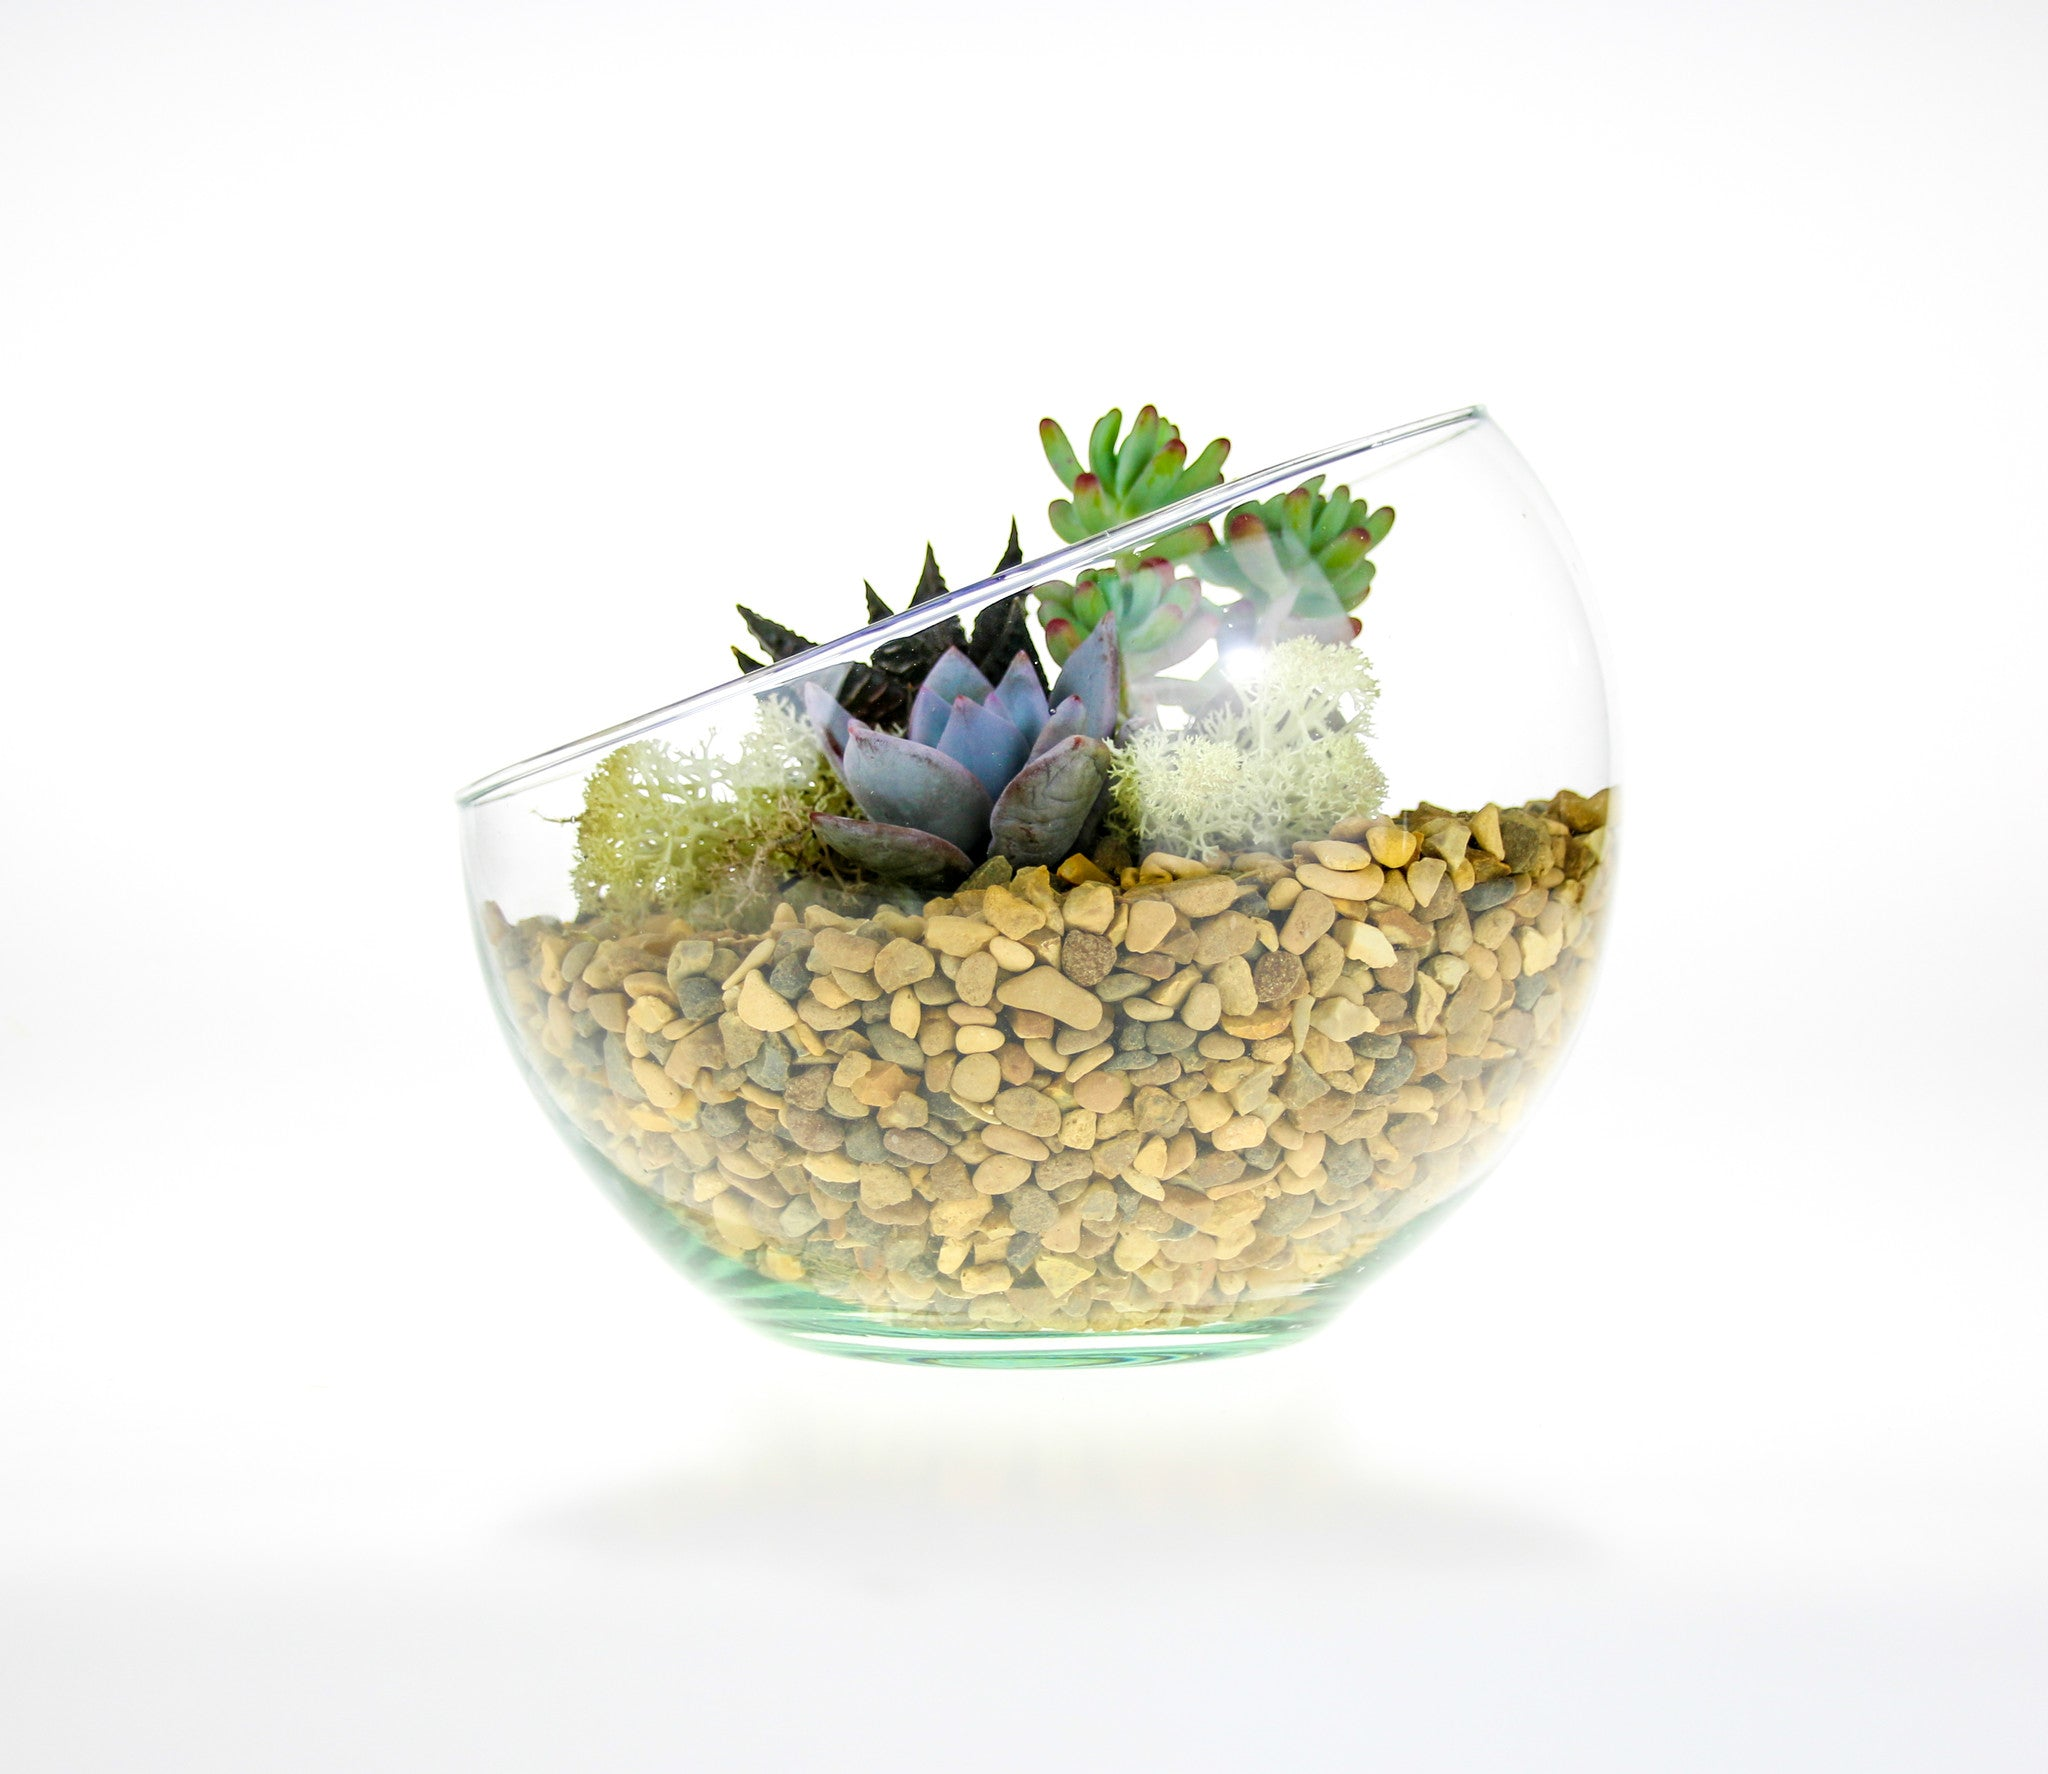 Angled Glass Bowl Terrarium Kit With Miniature Succulent Plants